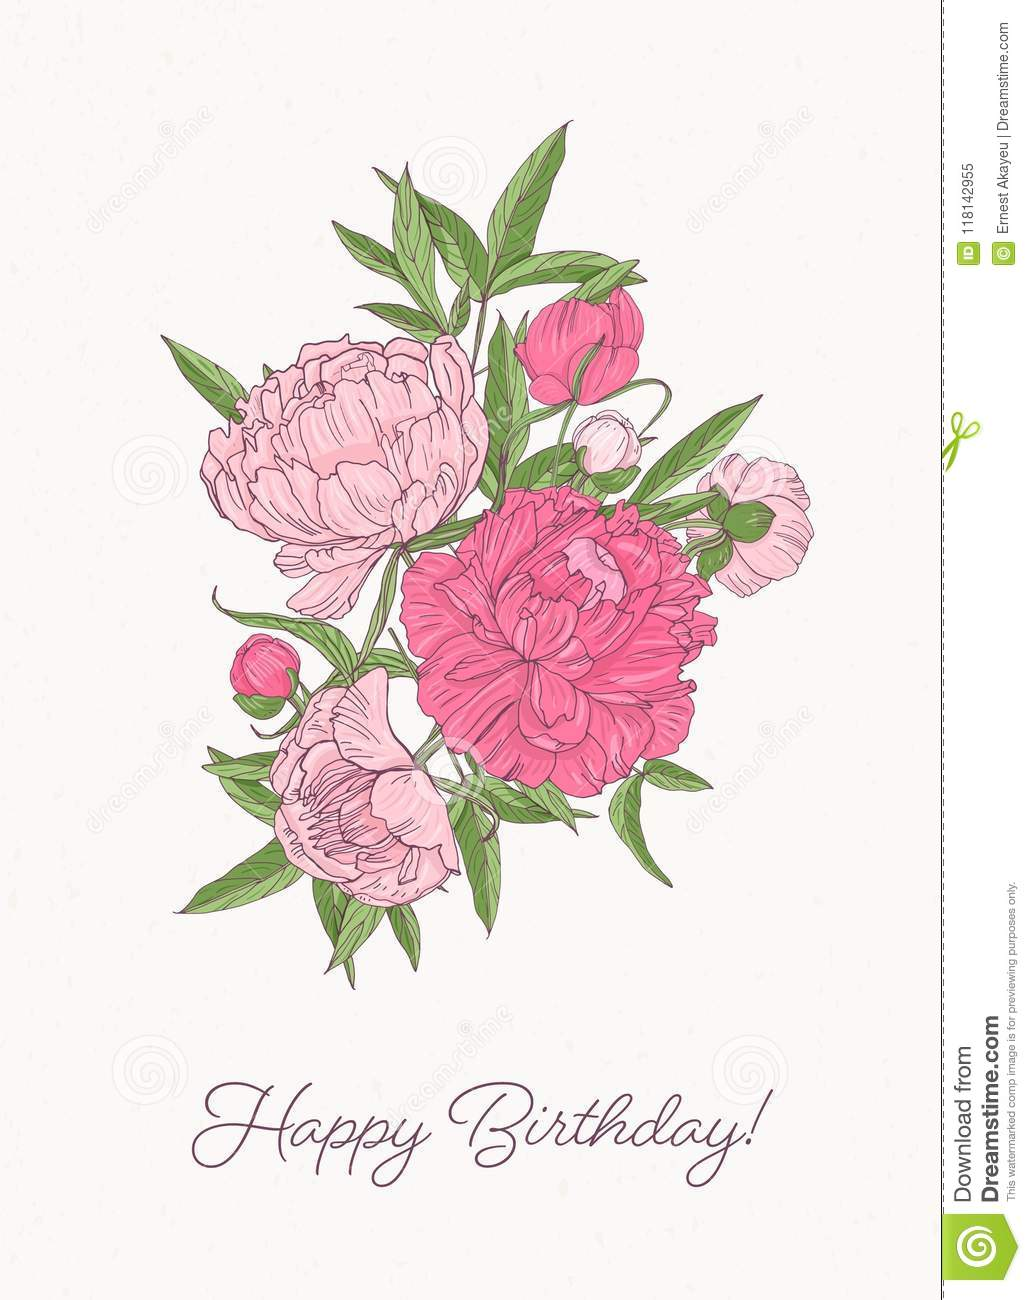 Birthday Greeting Card Template With Bunch Of Gorgeous Blooming